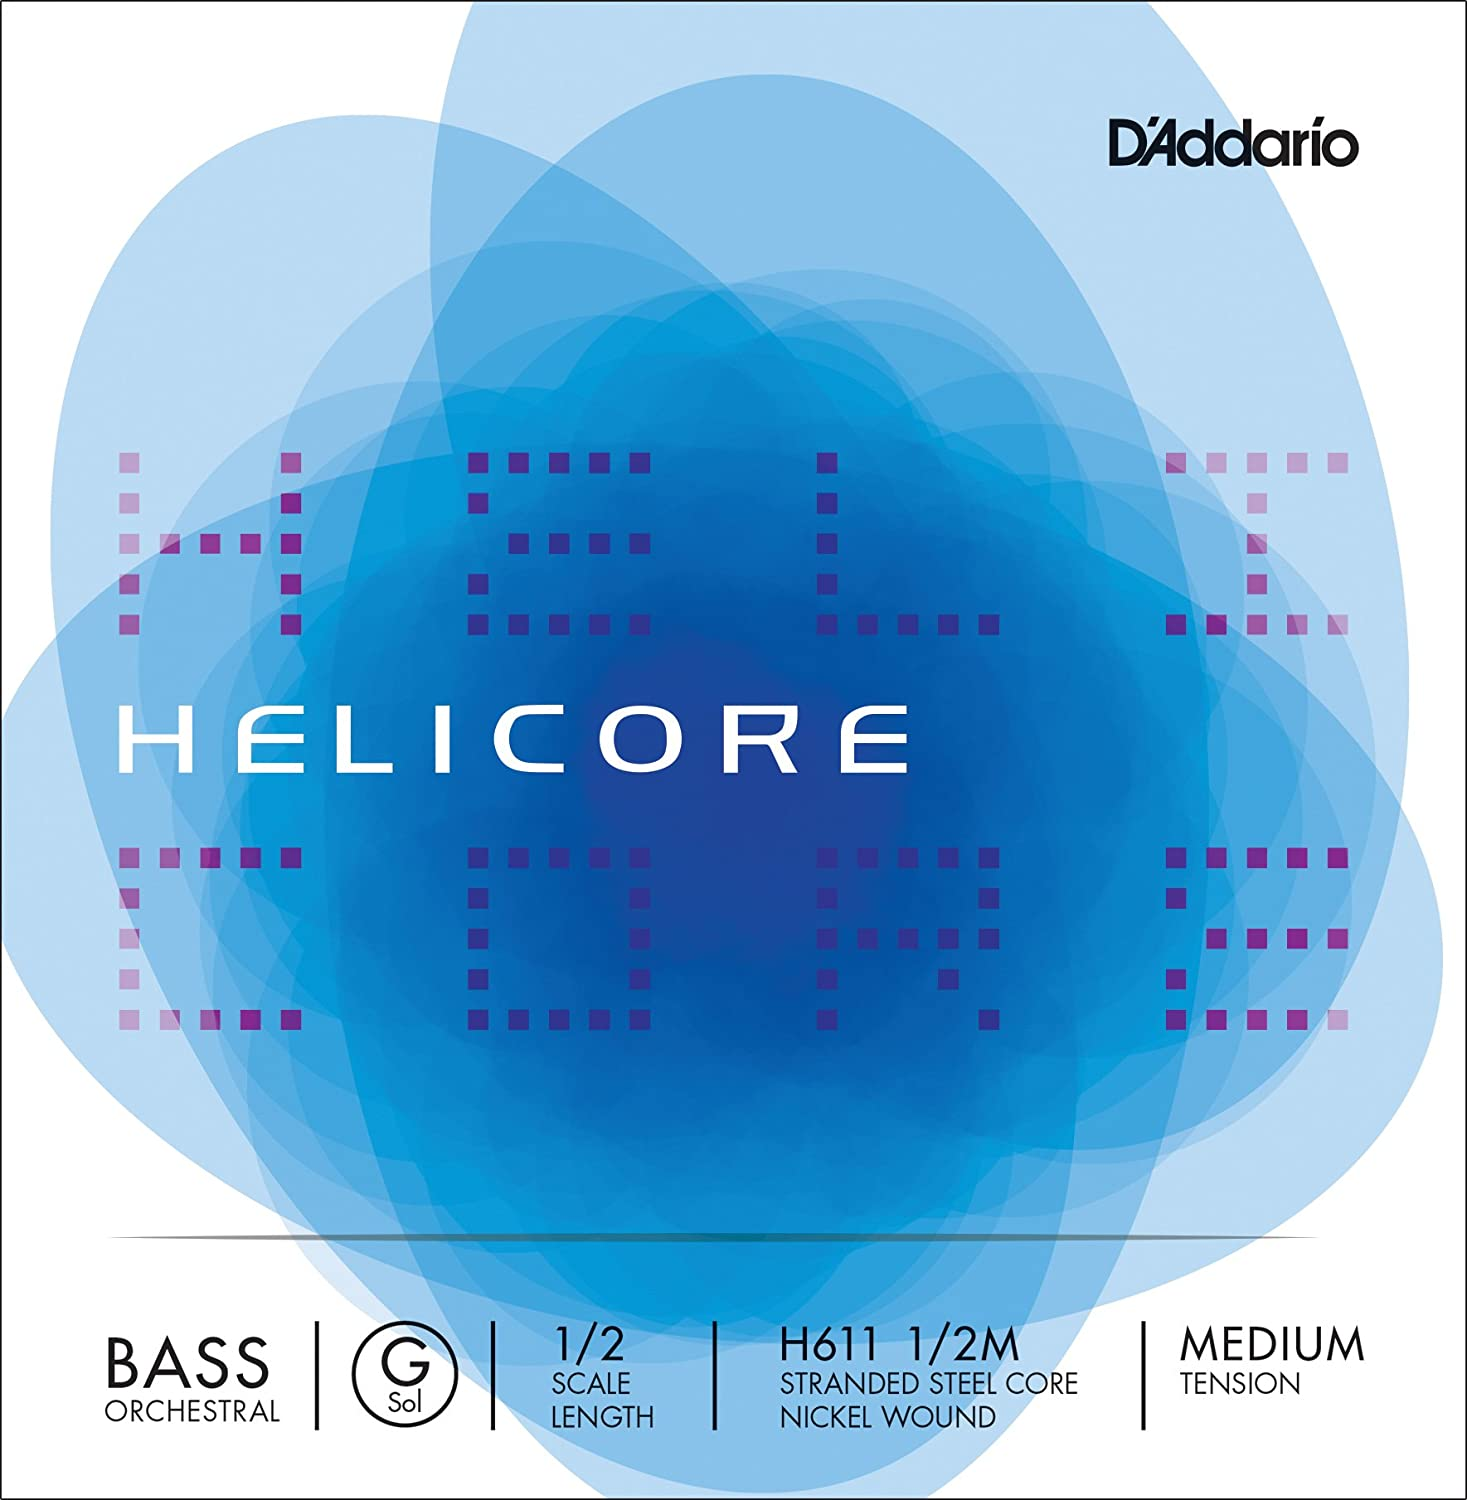 Medium Tension DAddario Helicore Orchestral Bass Single G String 1//10 Scale